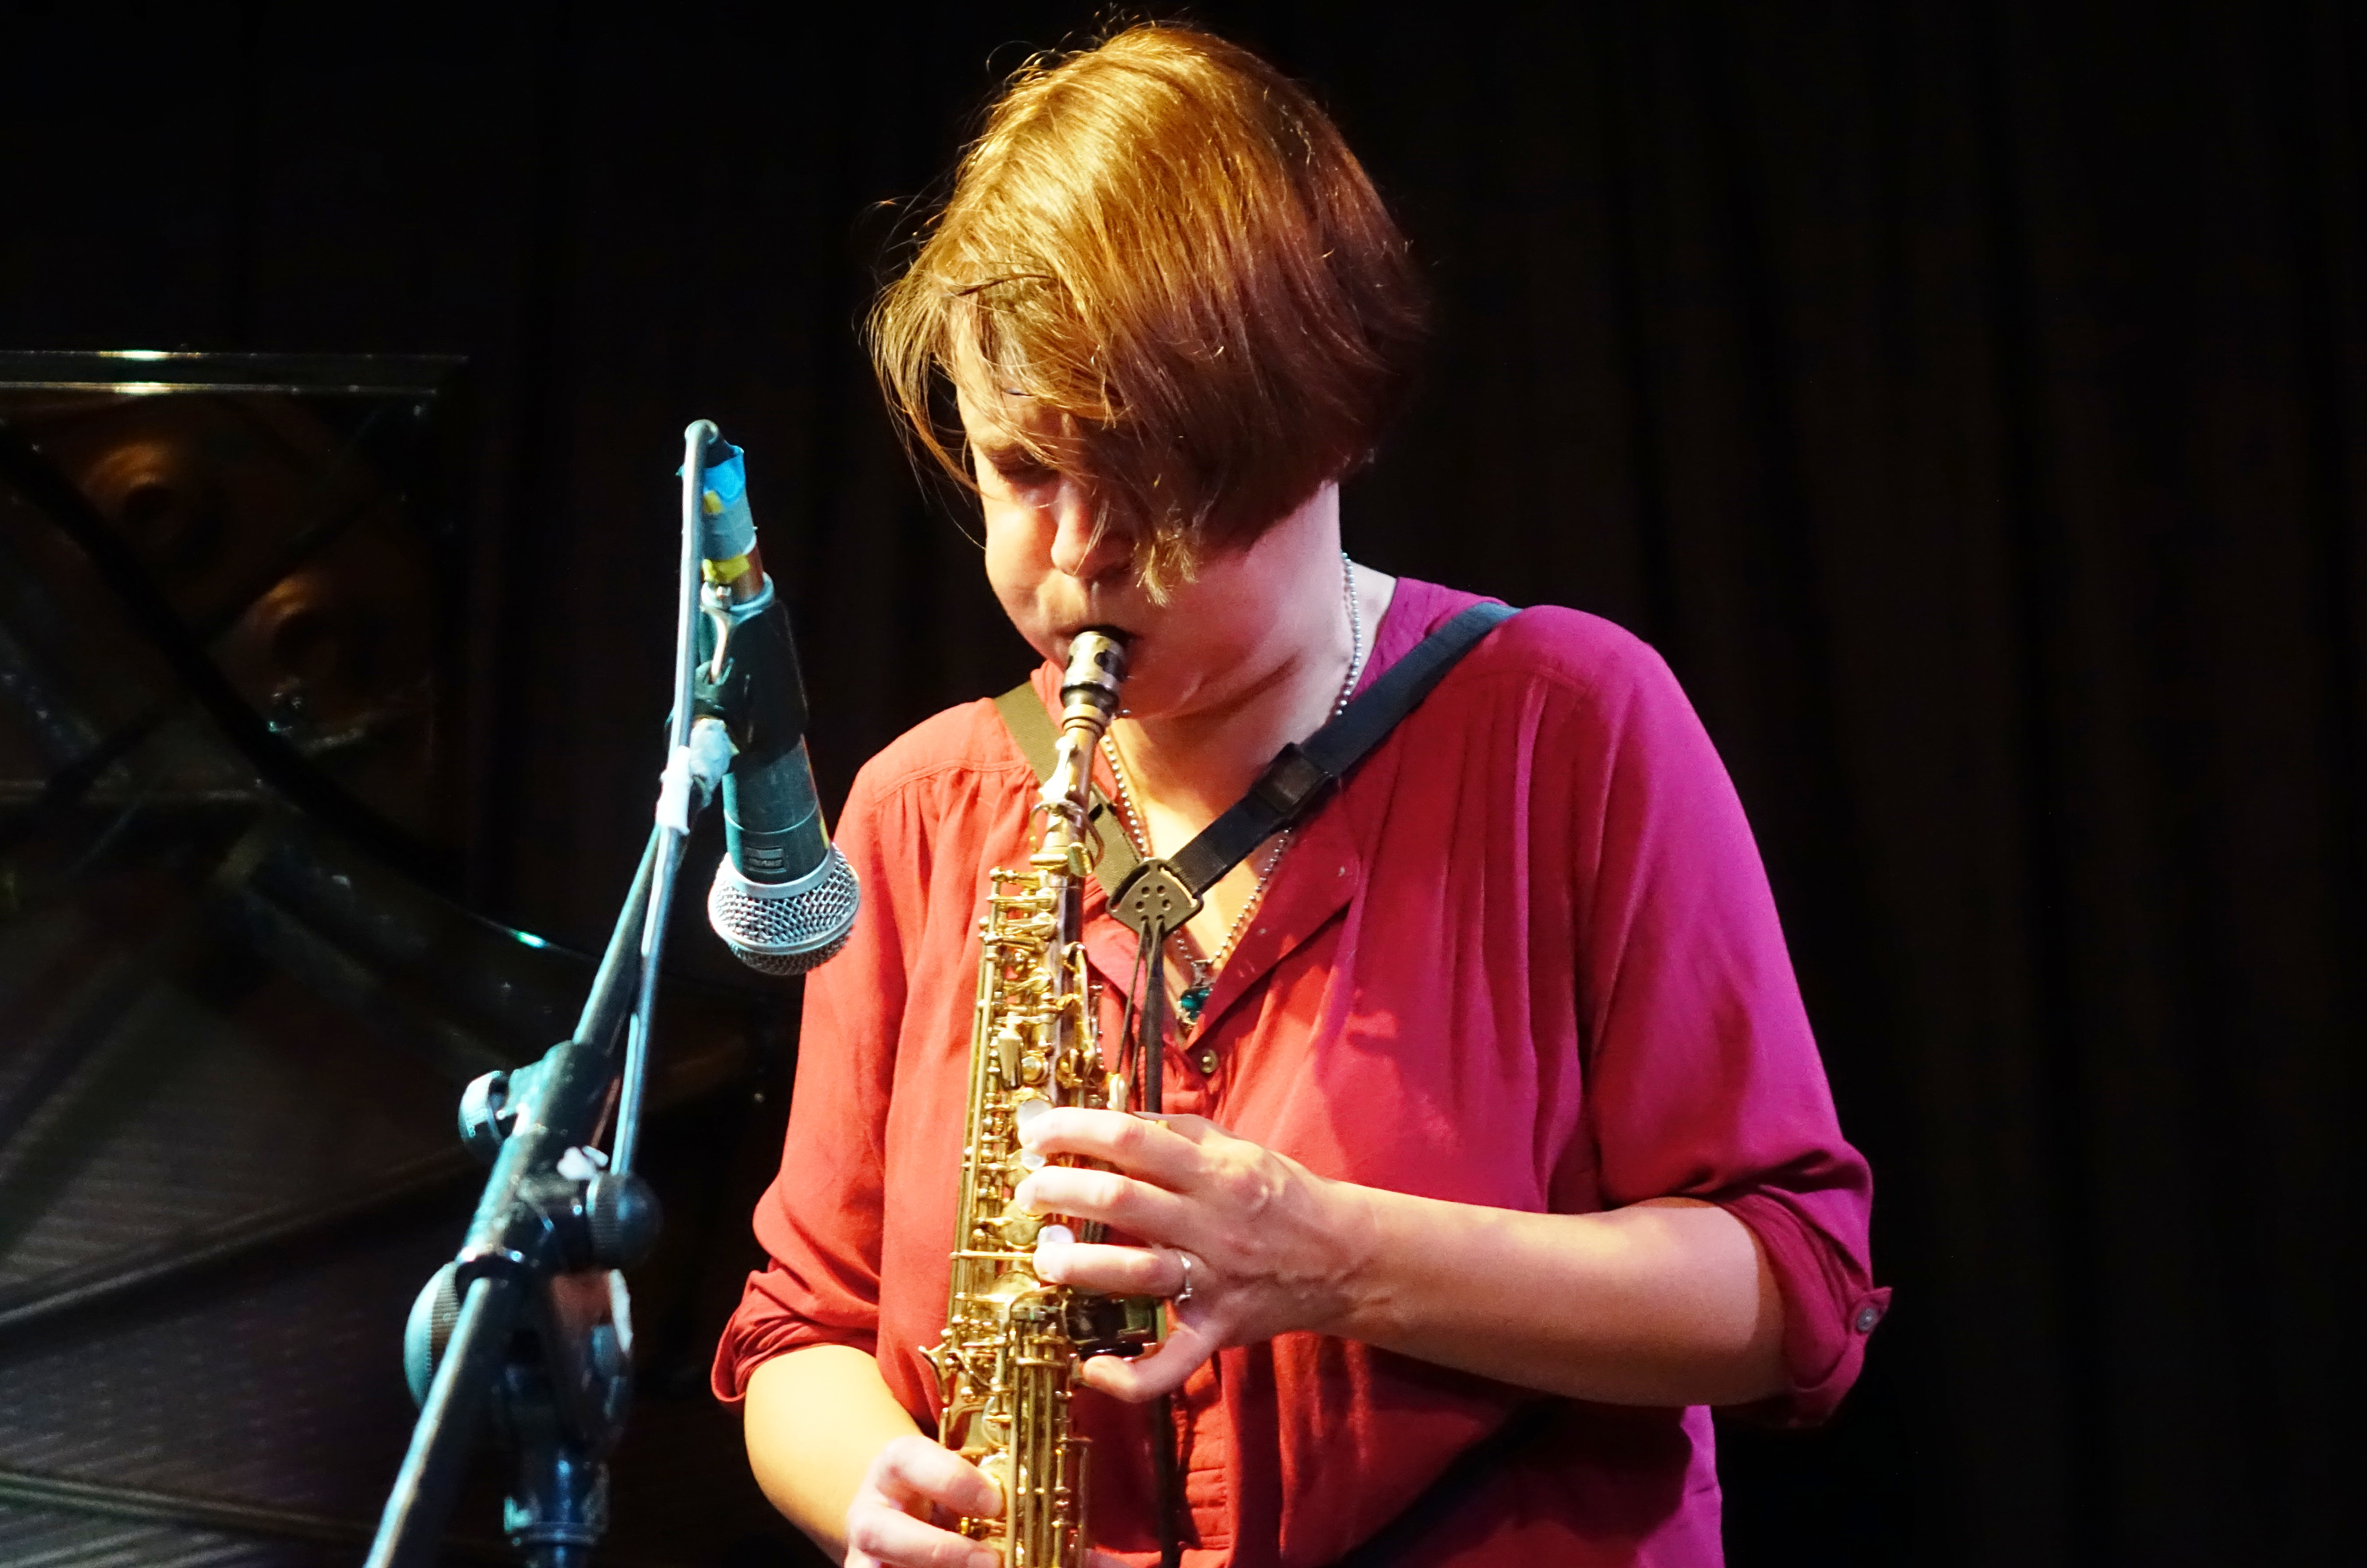 Ingrid Laubrock at the Vortex, London in December 2017